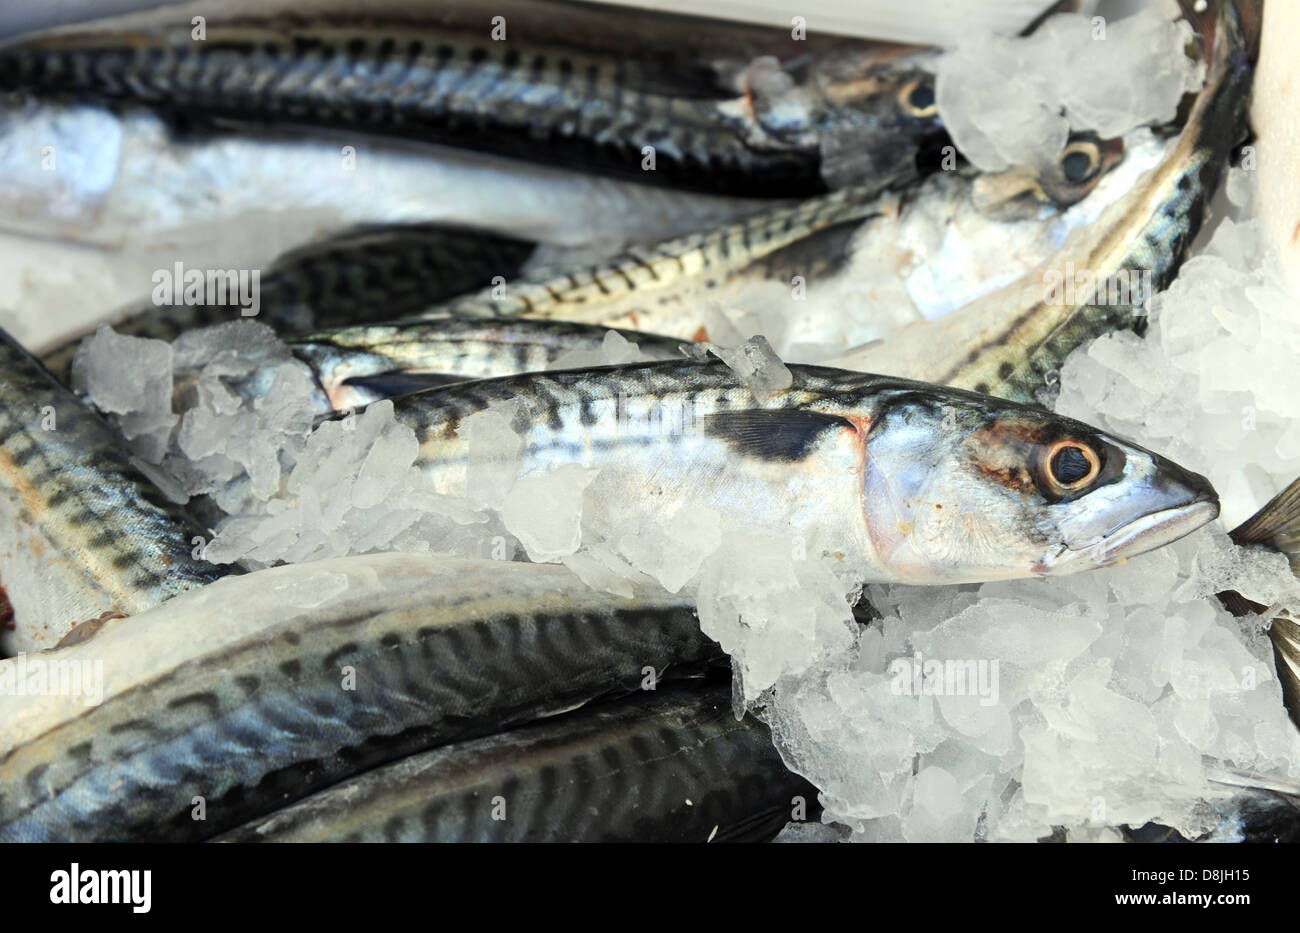 Mackerel on a fishmongers stall - Stock Image